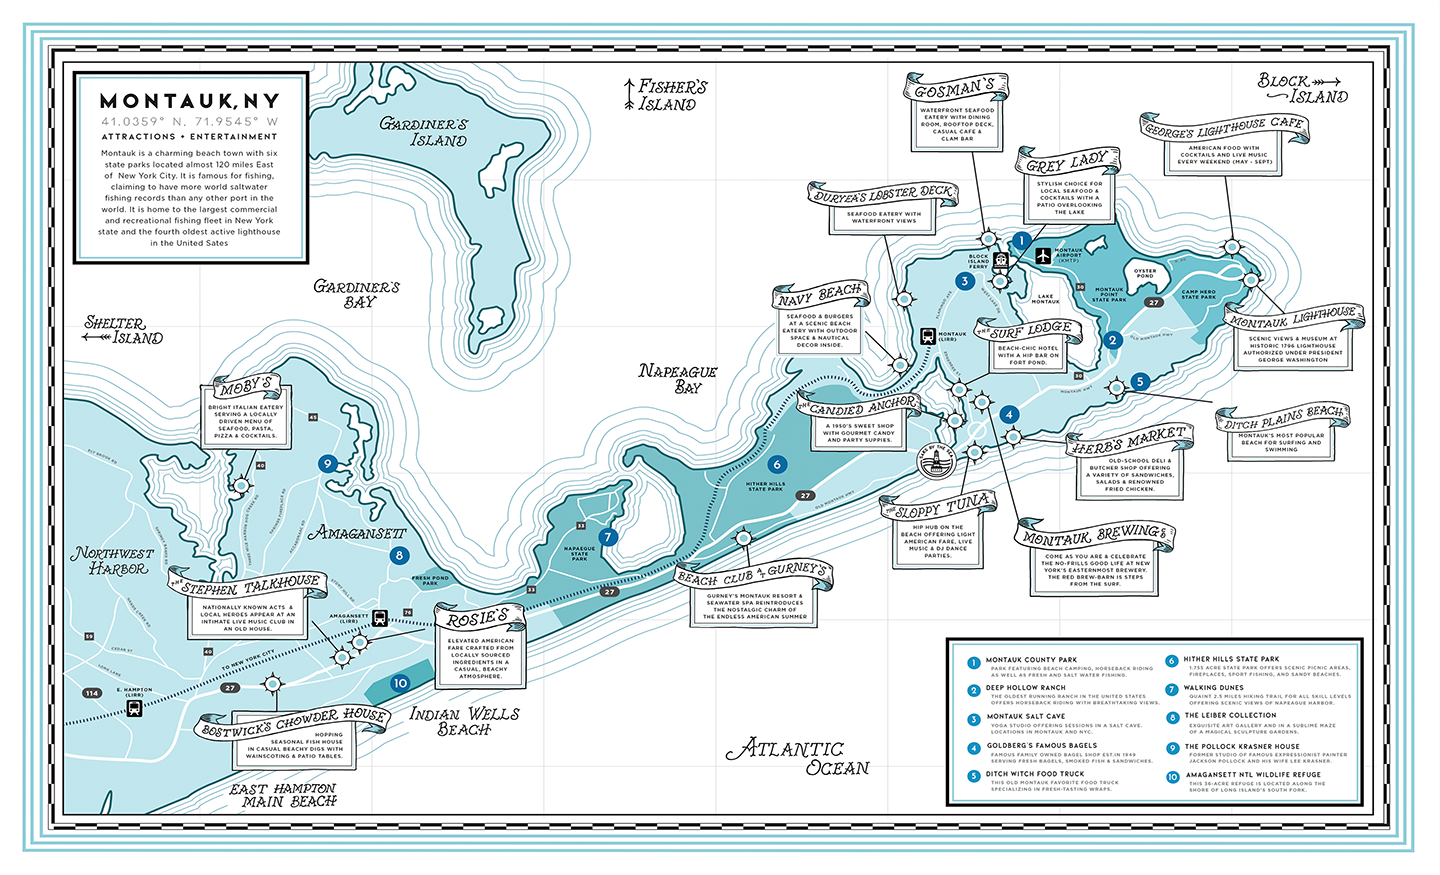 map-mock-1_0006_Layer-Comp-7.png